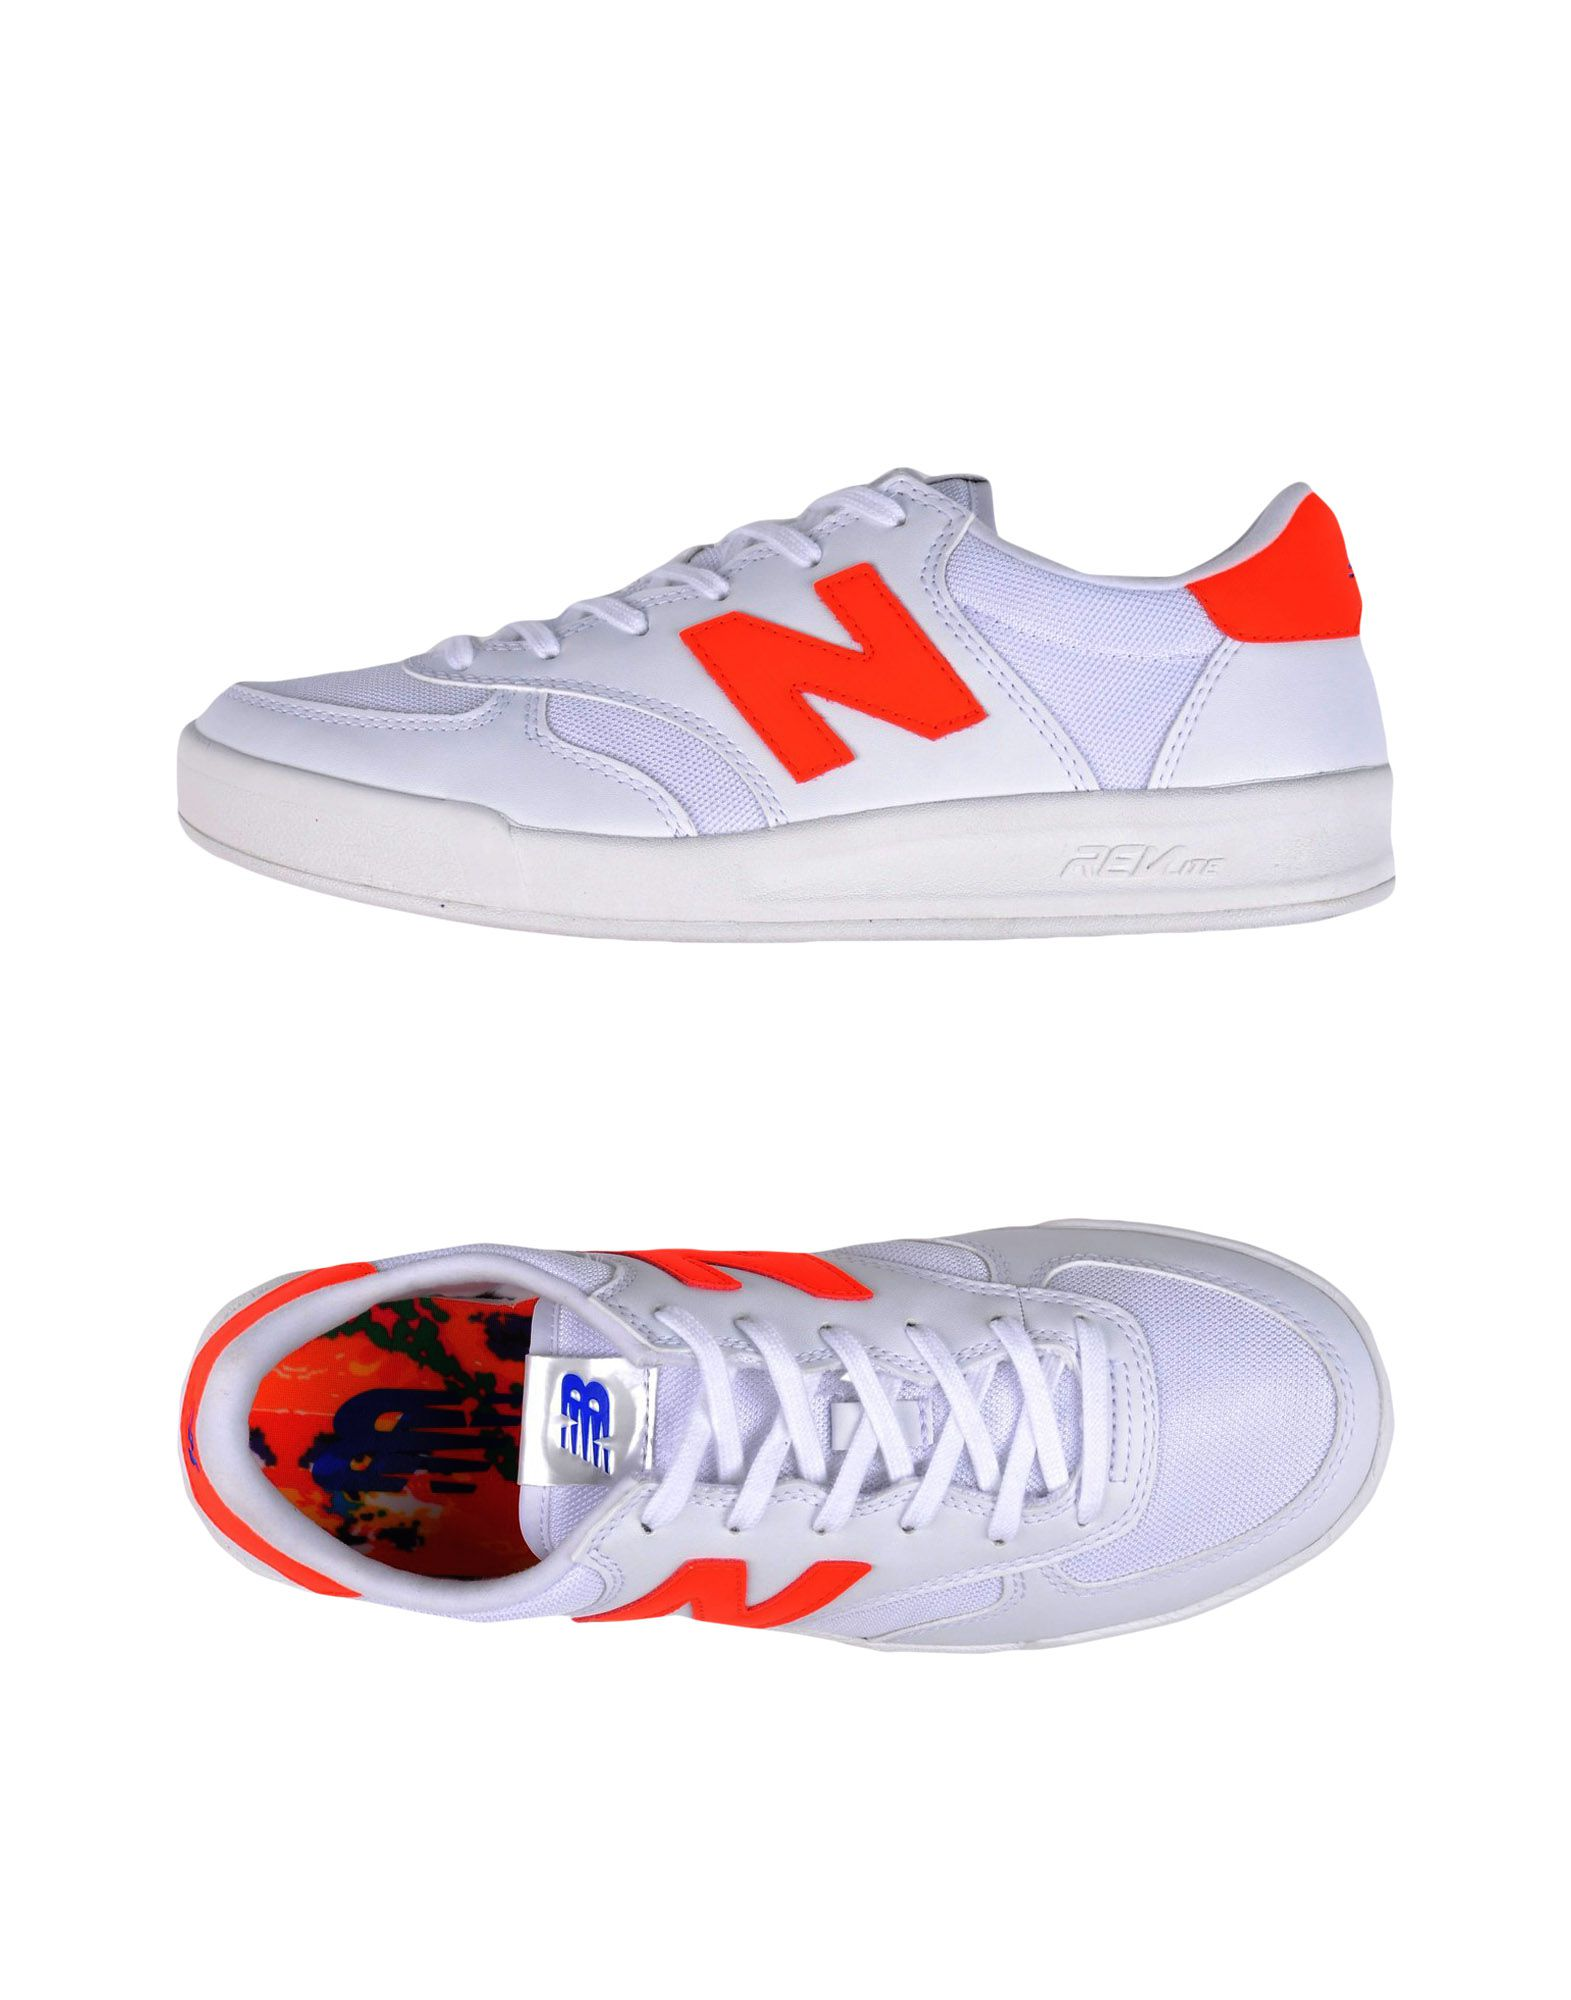 Sneakers New Balance 300 White - Femme - Sneakers New Balance sur